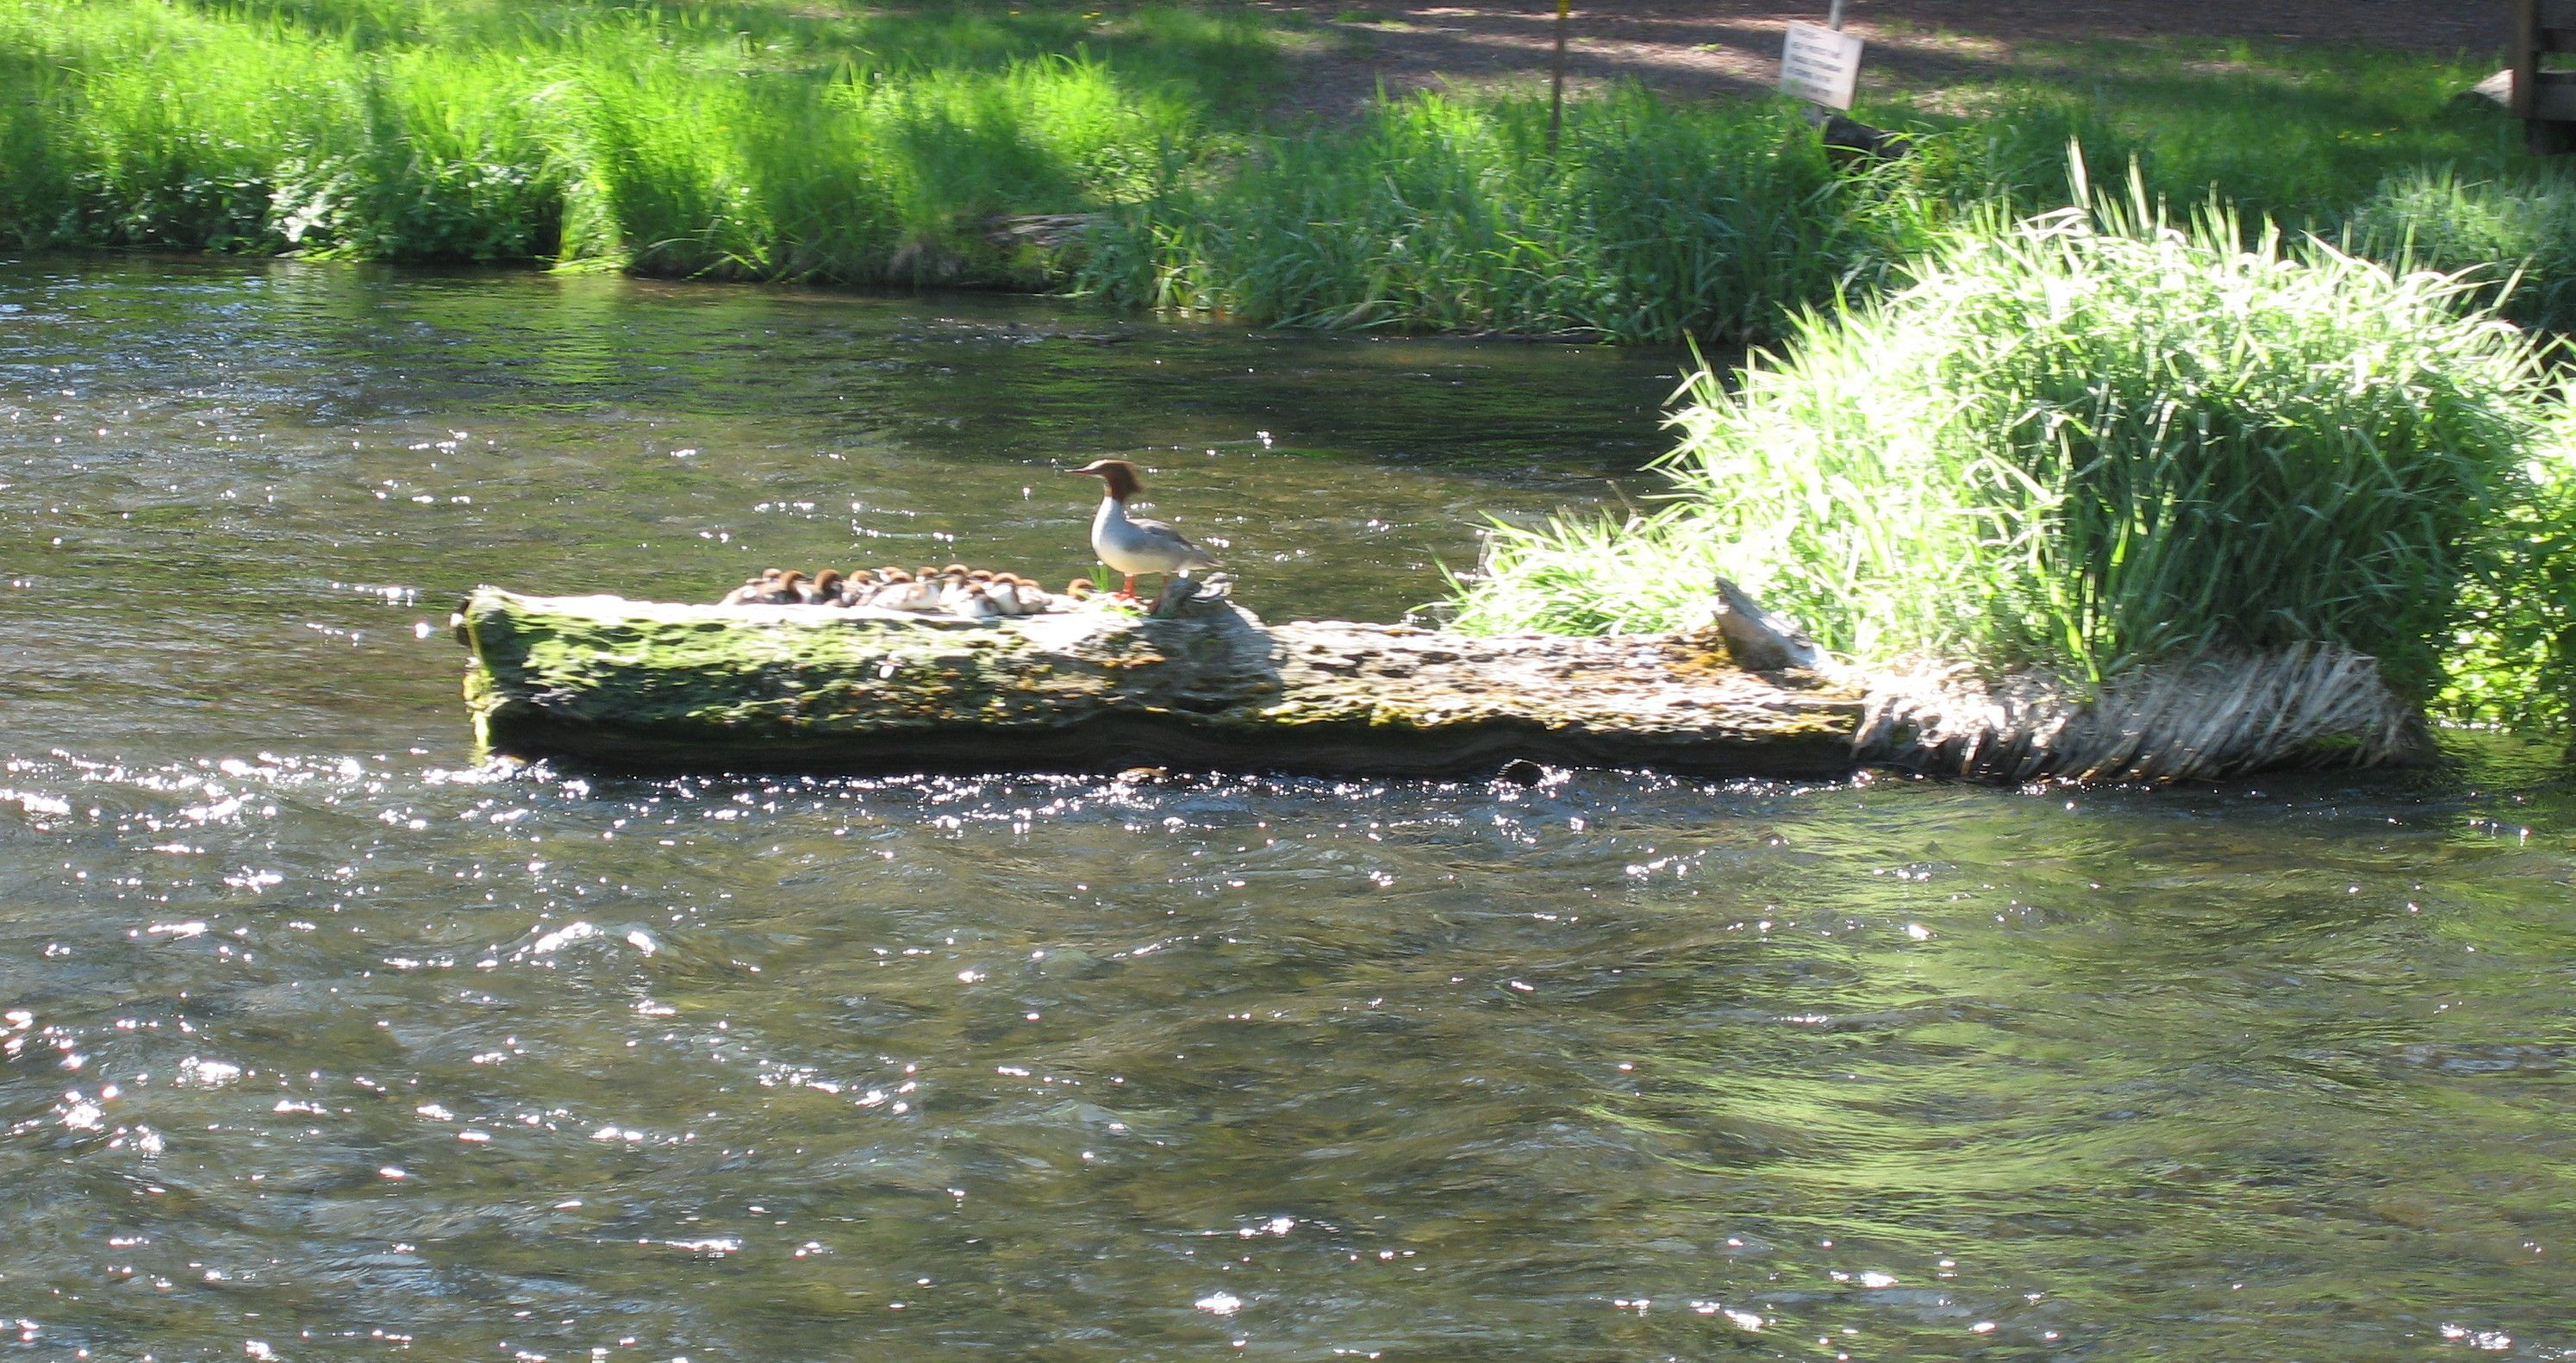 The Merganser and her chicks at the Metolius River, OR